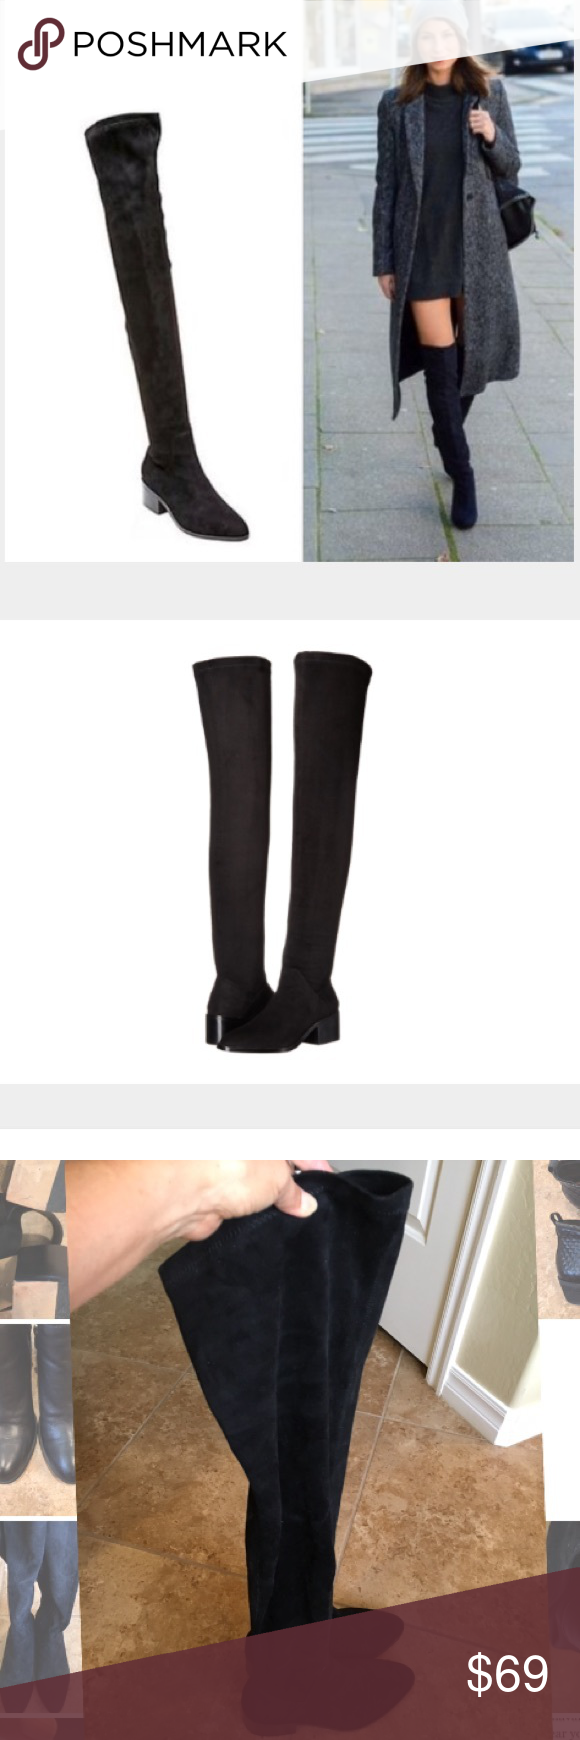 b1616875b39 Steve Madden Gabriana Black over the knee boots, size 7, true to ...